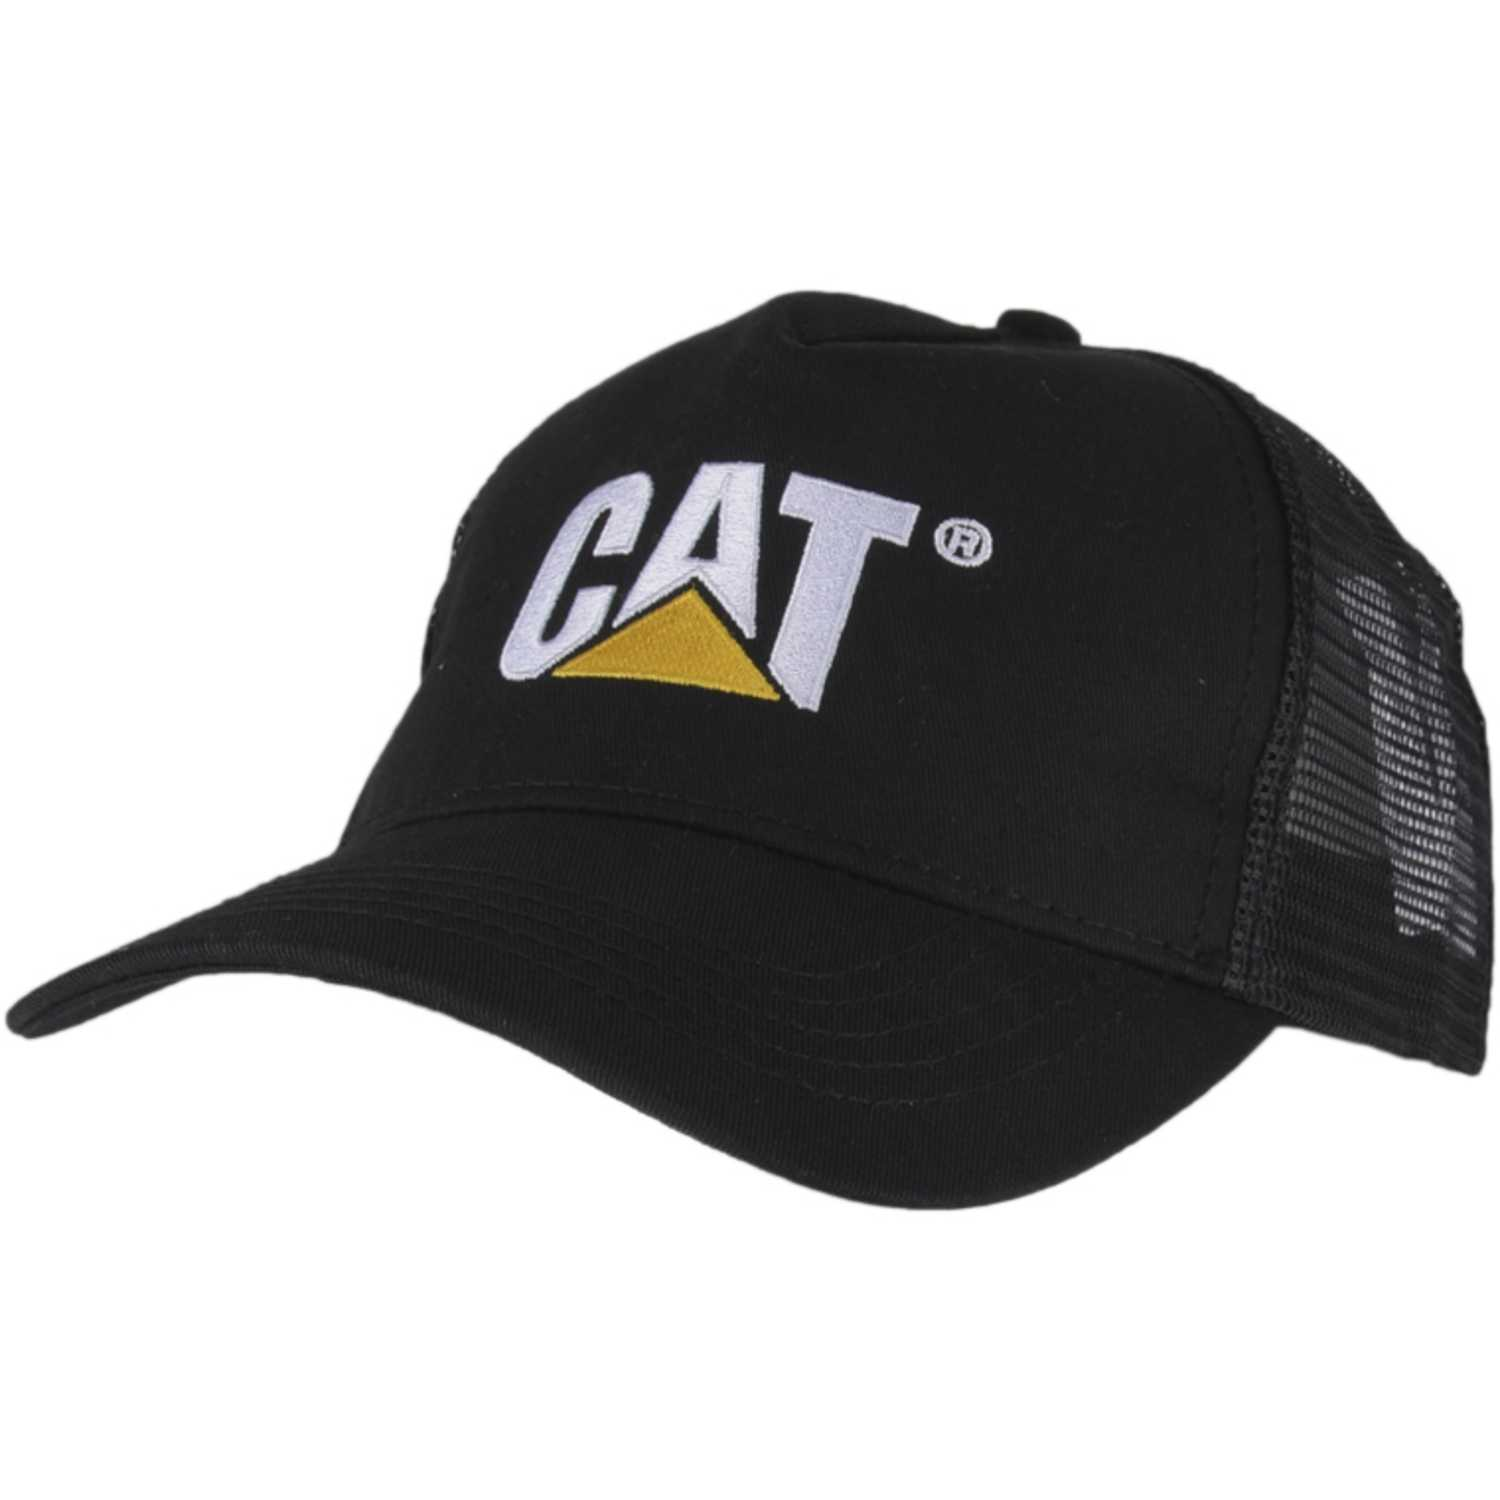 CAT Design Mark Mesh Hat Negro Gorras de béisbol